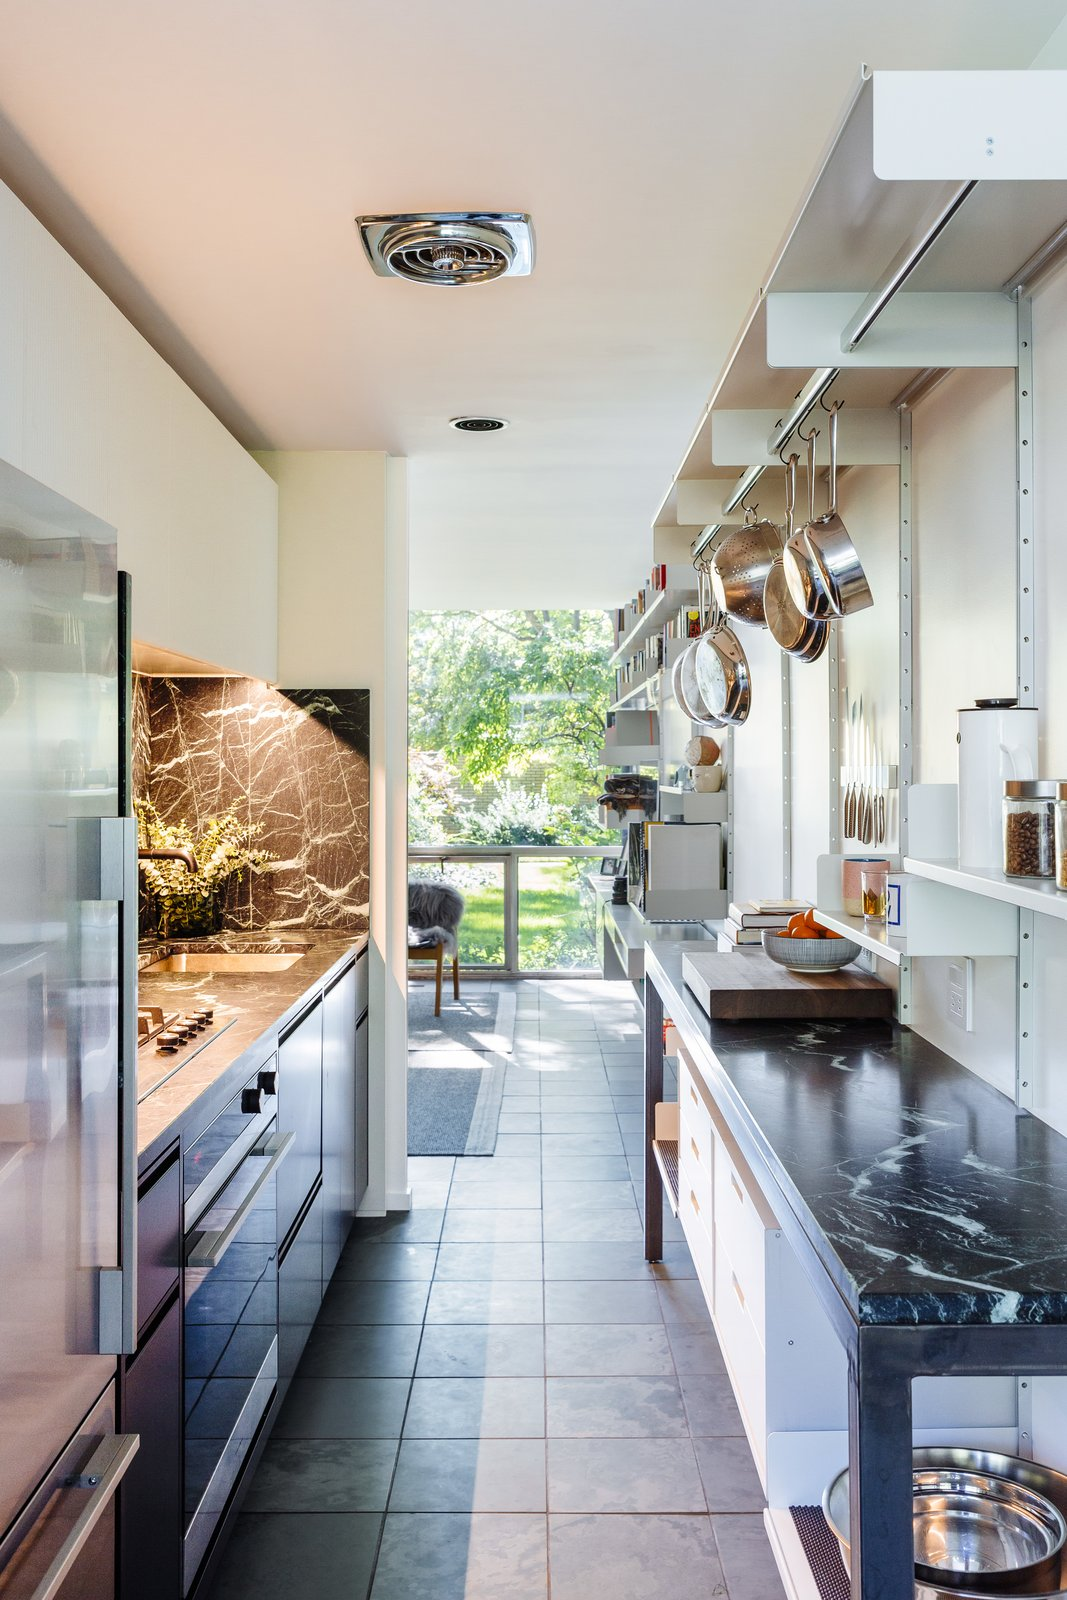 Kitchen, Marble, Refrigerator, White, Range, Undermount, Slate, Accent, and Marble Designer Bryan Boyer and lawyer Laura Lewis bought their townhouse in Lafayette Park in 2015, the same year the storied co-op joined the National Register of Historic Places. Their restoration included laying slate floor tiles the same size as the original linoleum squares, hanging modular Dieter Rams wall shelving, and adding appliances by Fisher & Paykel.  Best Kitchen Marble Undermount Photos from A New York Transplant Remakes One of Mies van der Rohe's Coveted Townhouses in Detroit